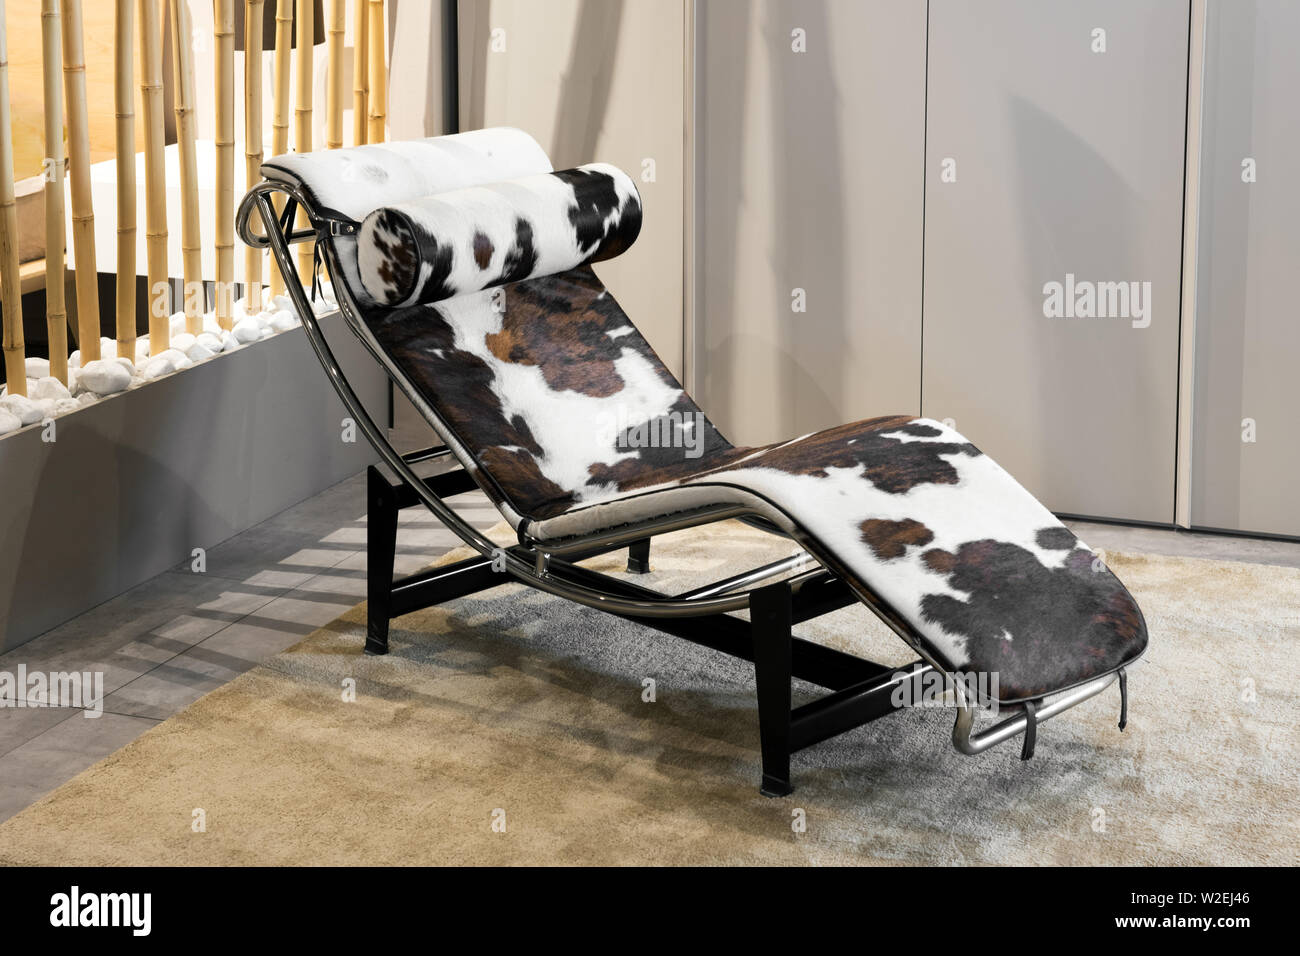 Elegant modern curved chaise longue with animal hide on a metal frame inside on a rug in a stylish home with neutral beige brown decor - Stock Image